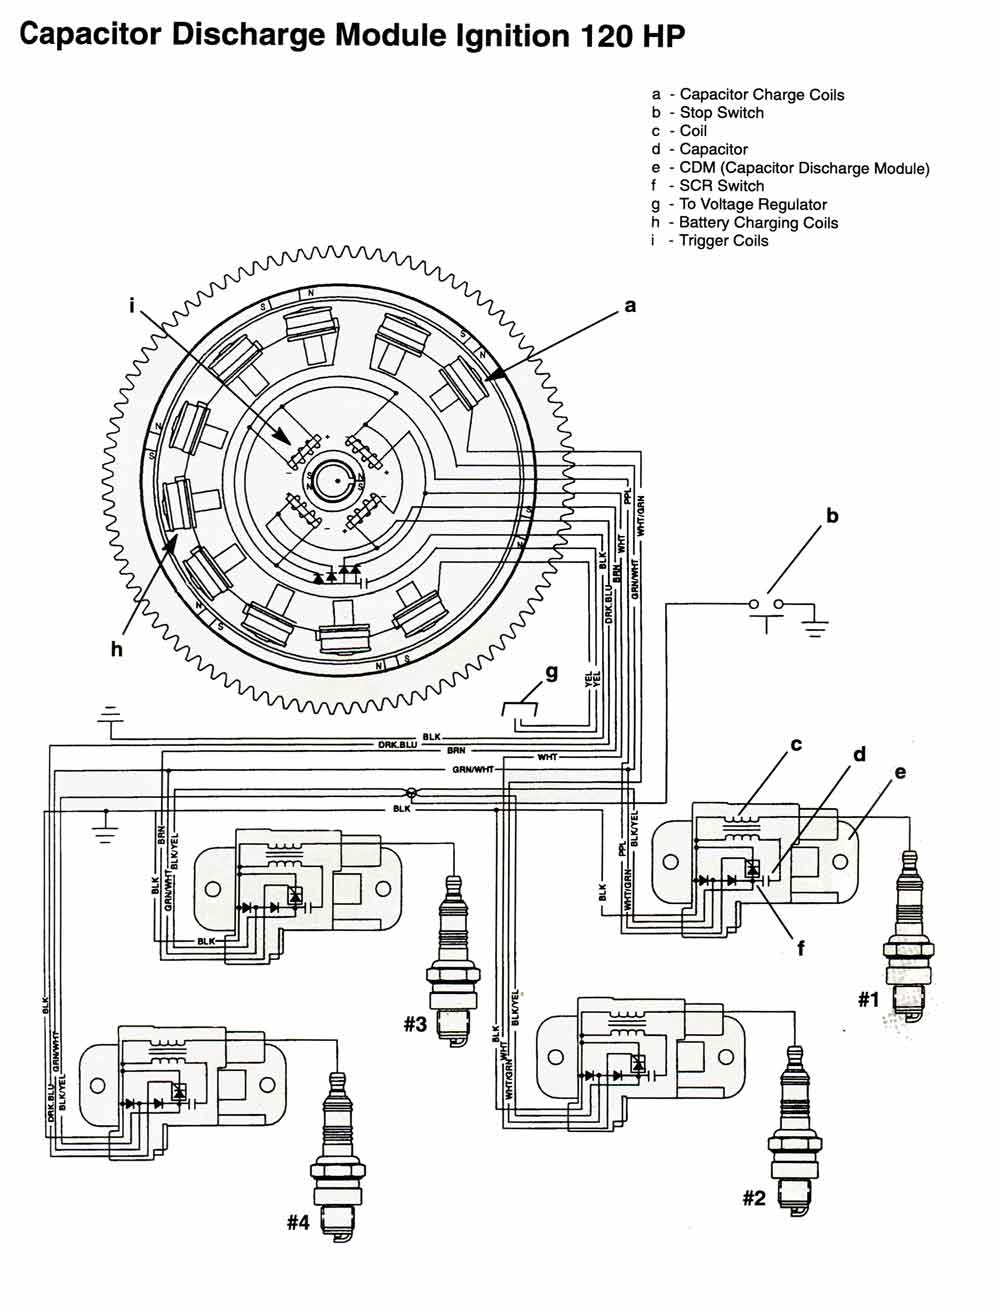 120 hp force outboard wiring diagram schematics wiring diagrams \u2022 force 90 outboard parts chrysler outboard wiring diagrams mastertech marine rh maxrules com 125 hp outboard motor 120 force outboard parts